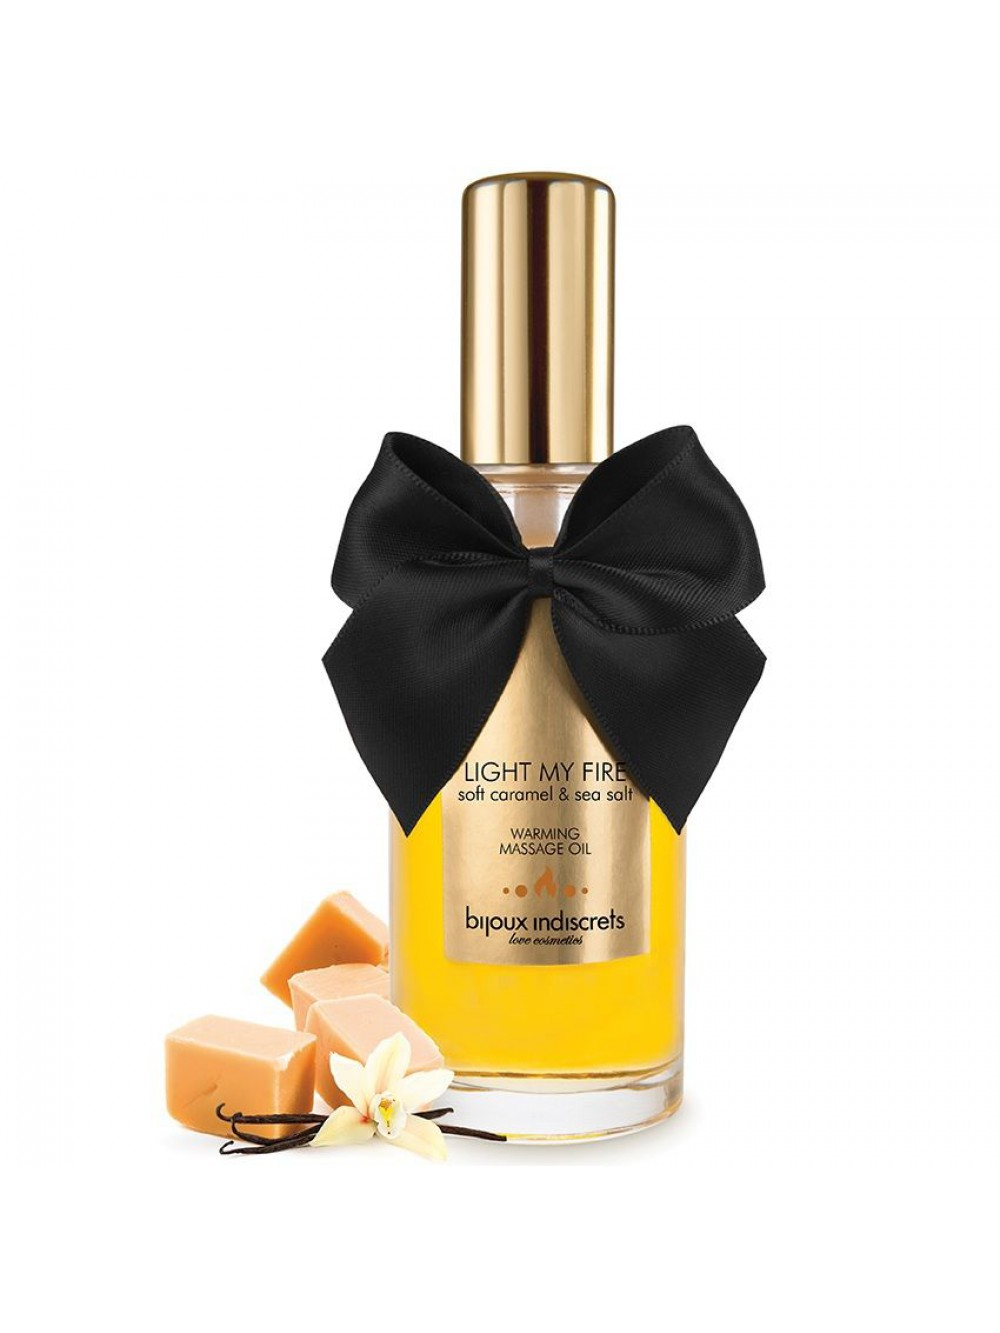 LIGHT MY FIRE SOFT CARAMEL WARMING OIL 8436562010461